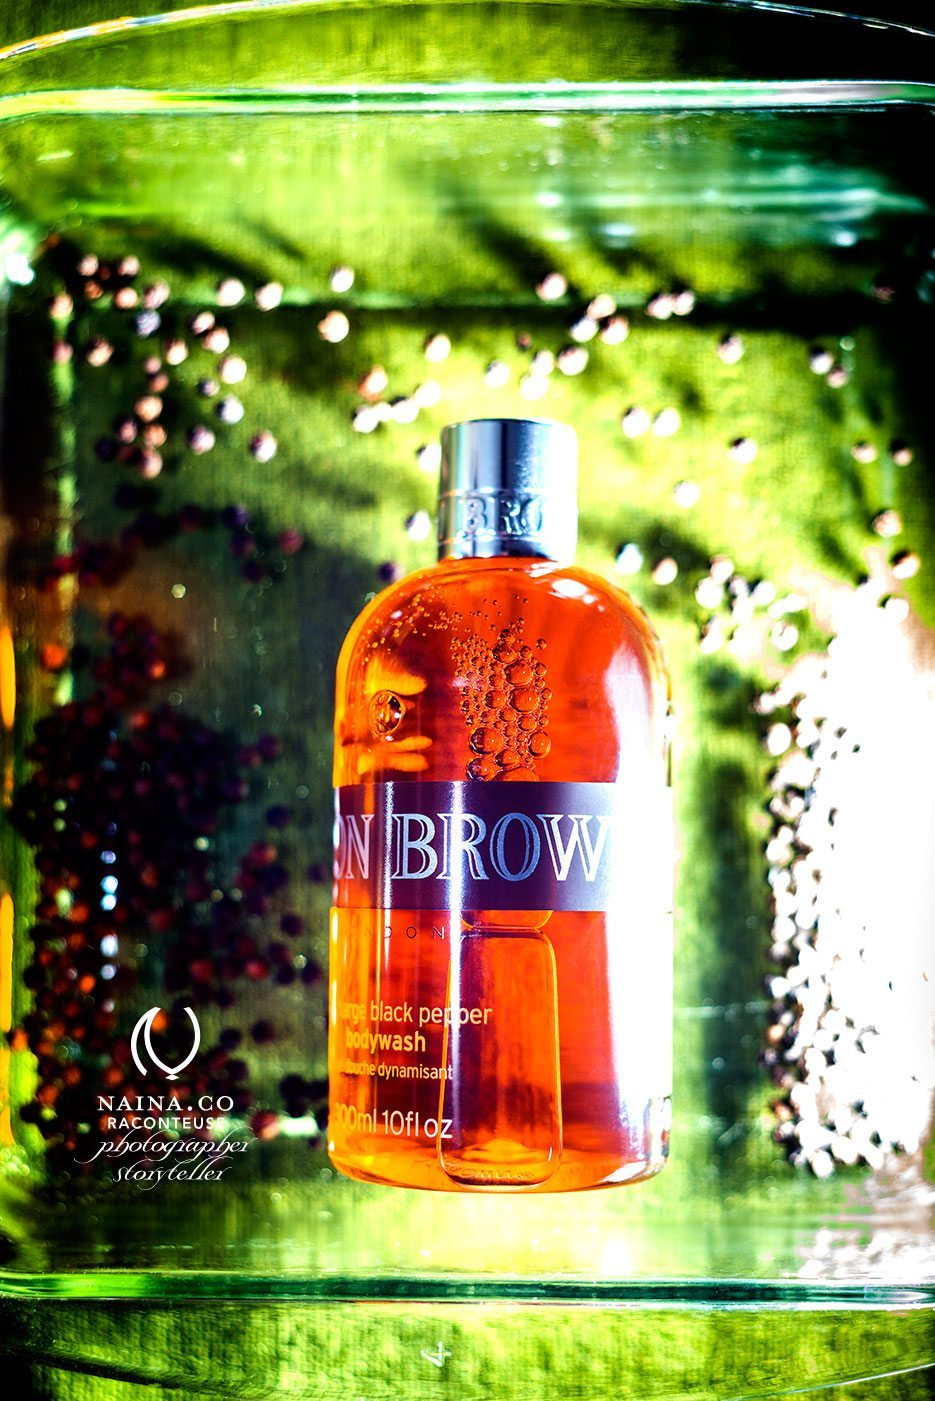 Naina.co-January-2014-Molton-Brown-Black-Pepper-BodyWash-Beauty-Care-Luxury-Raconteuse-Photographer-Storyteller-Blogger